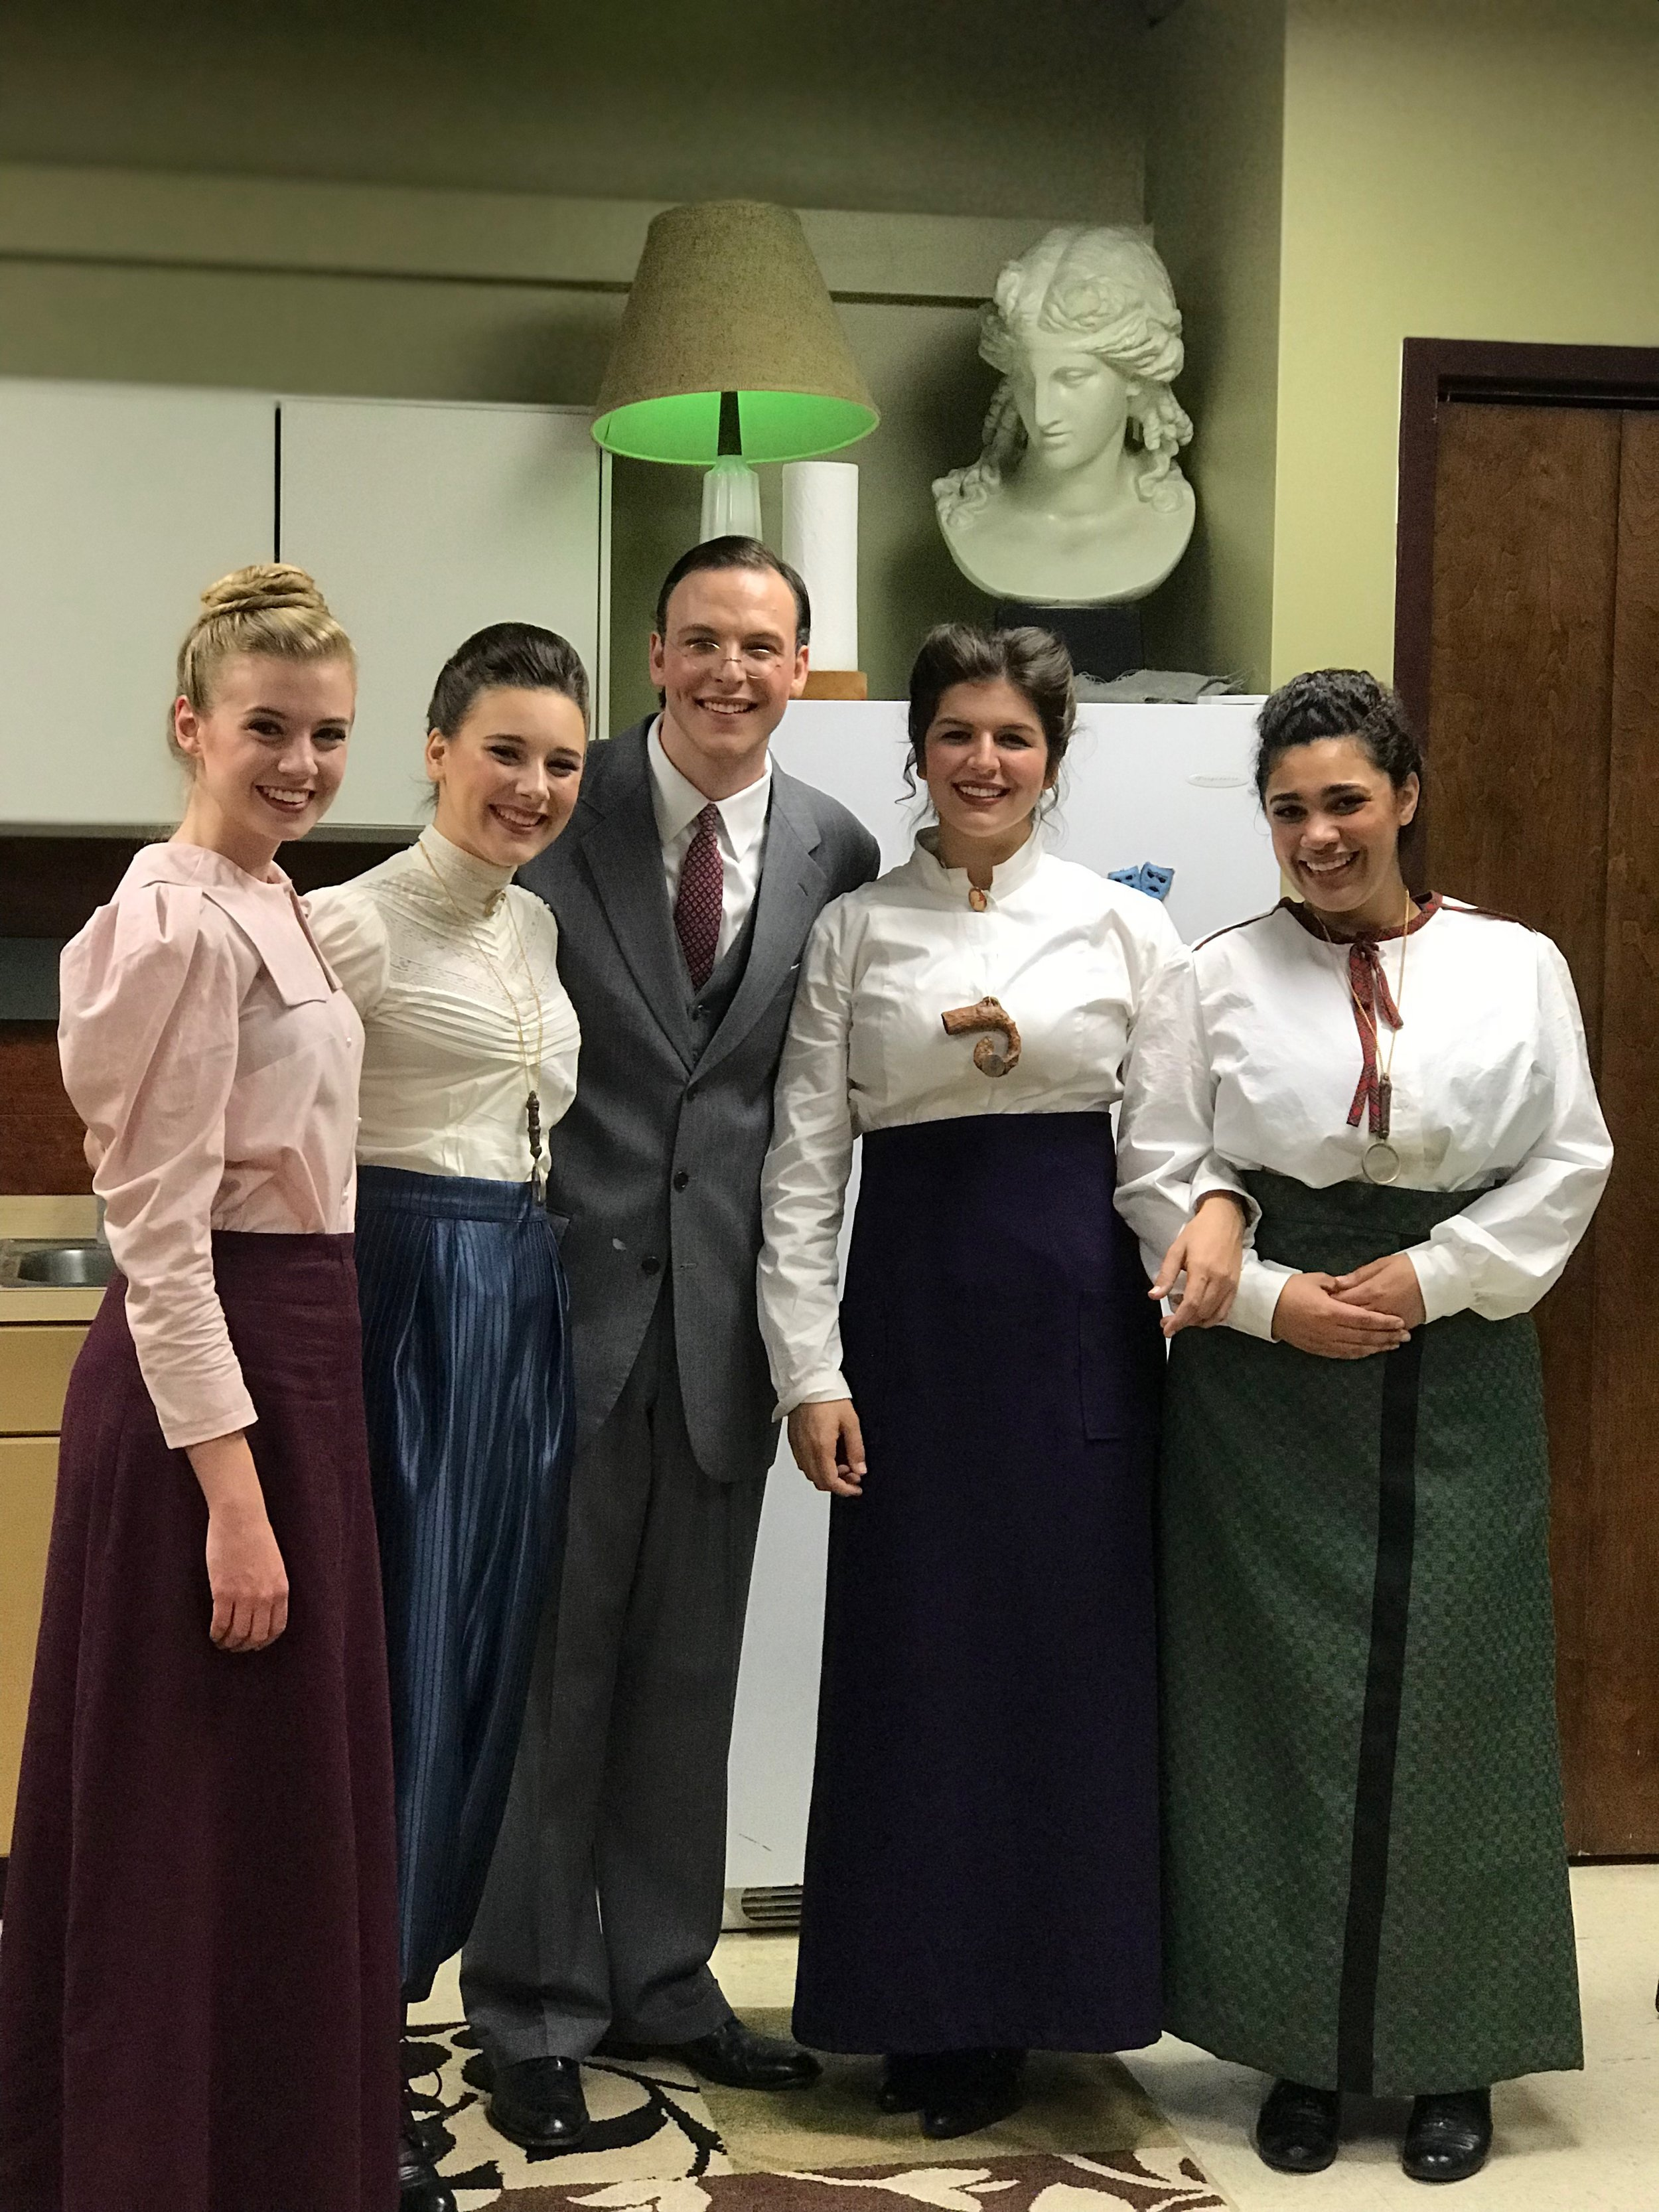 The cast members paused from dressing out of their costumes to pose for a group photo after the play.  From left to right: Abby Gilbert (sophomore), Rachel Gasdia (sophomore), Tanner Dean (junior), Emily Smith (senior) and Cassie Scott (senior).